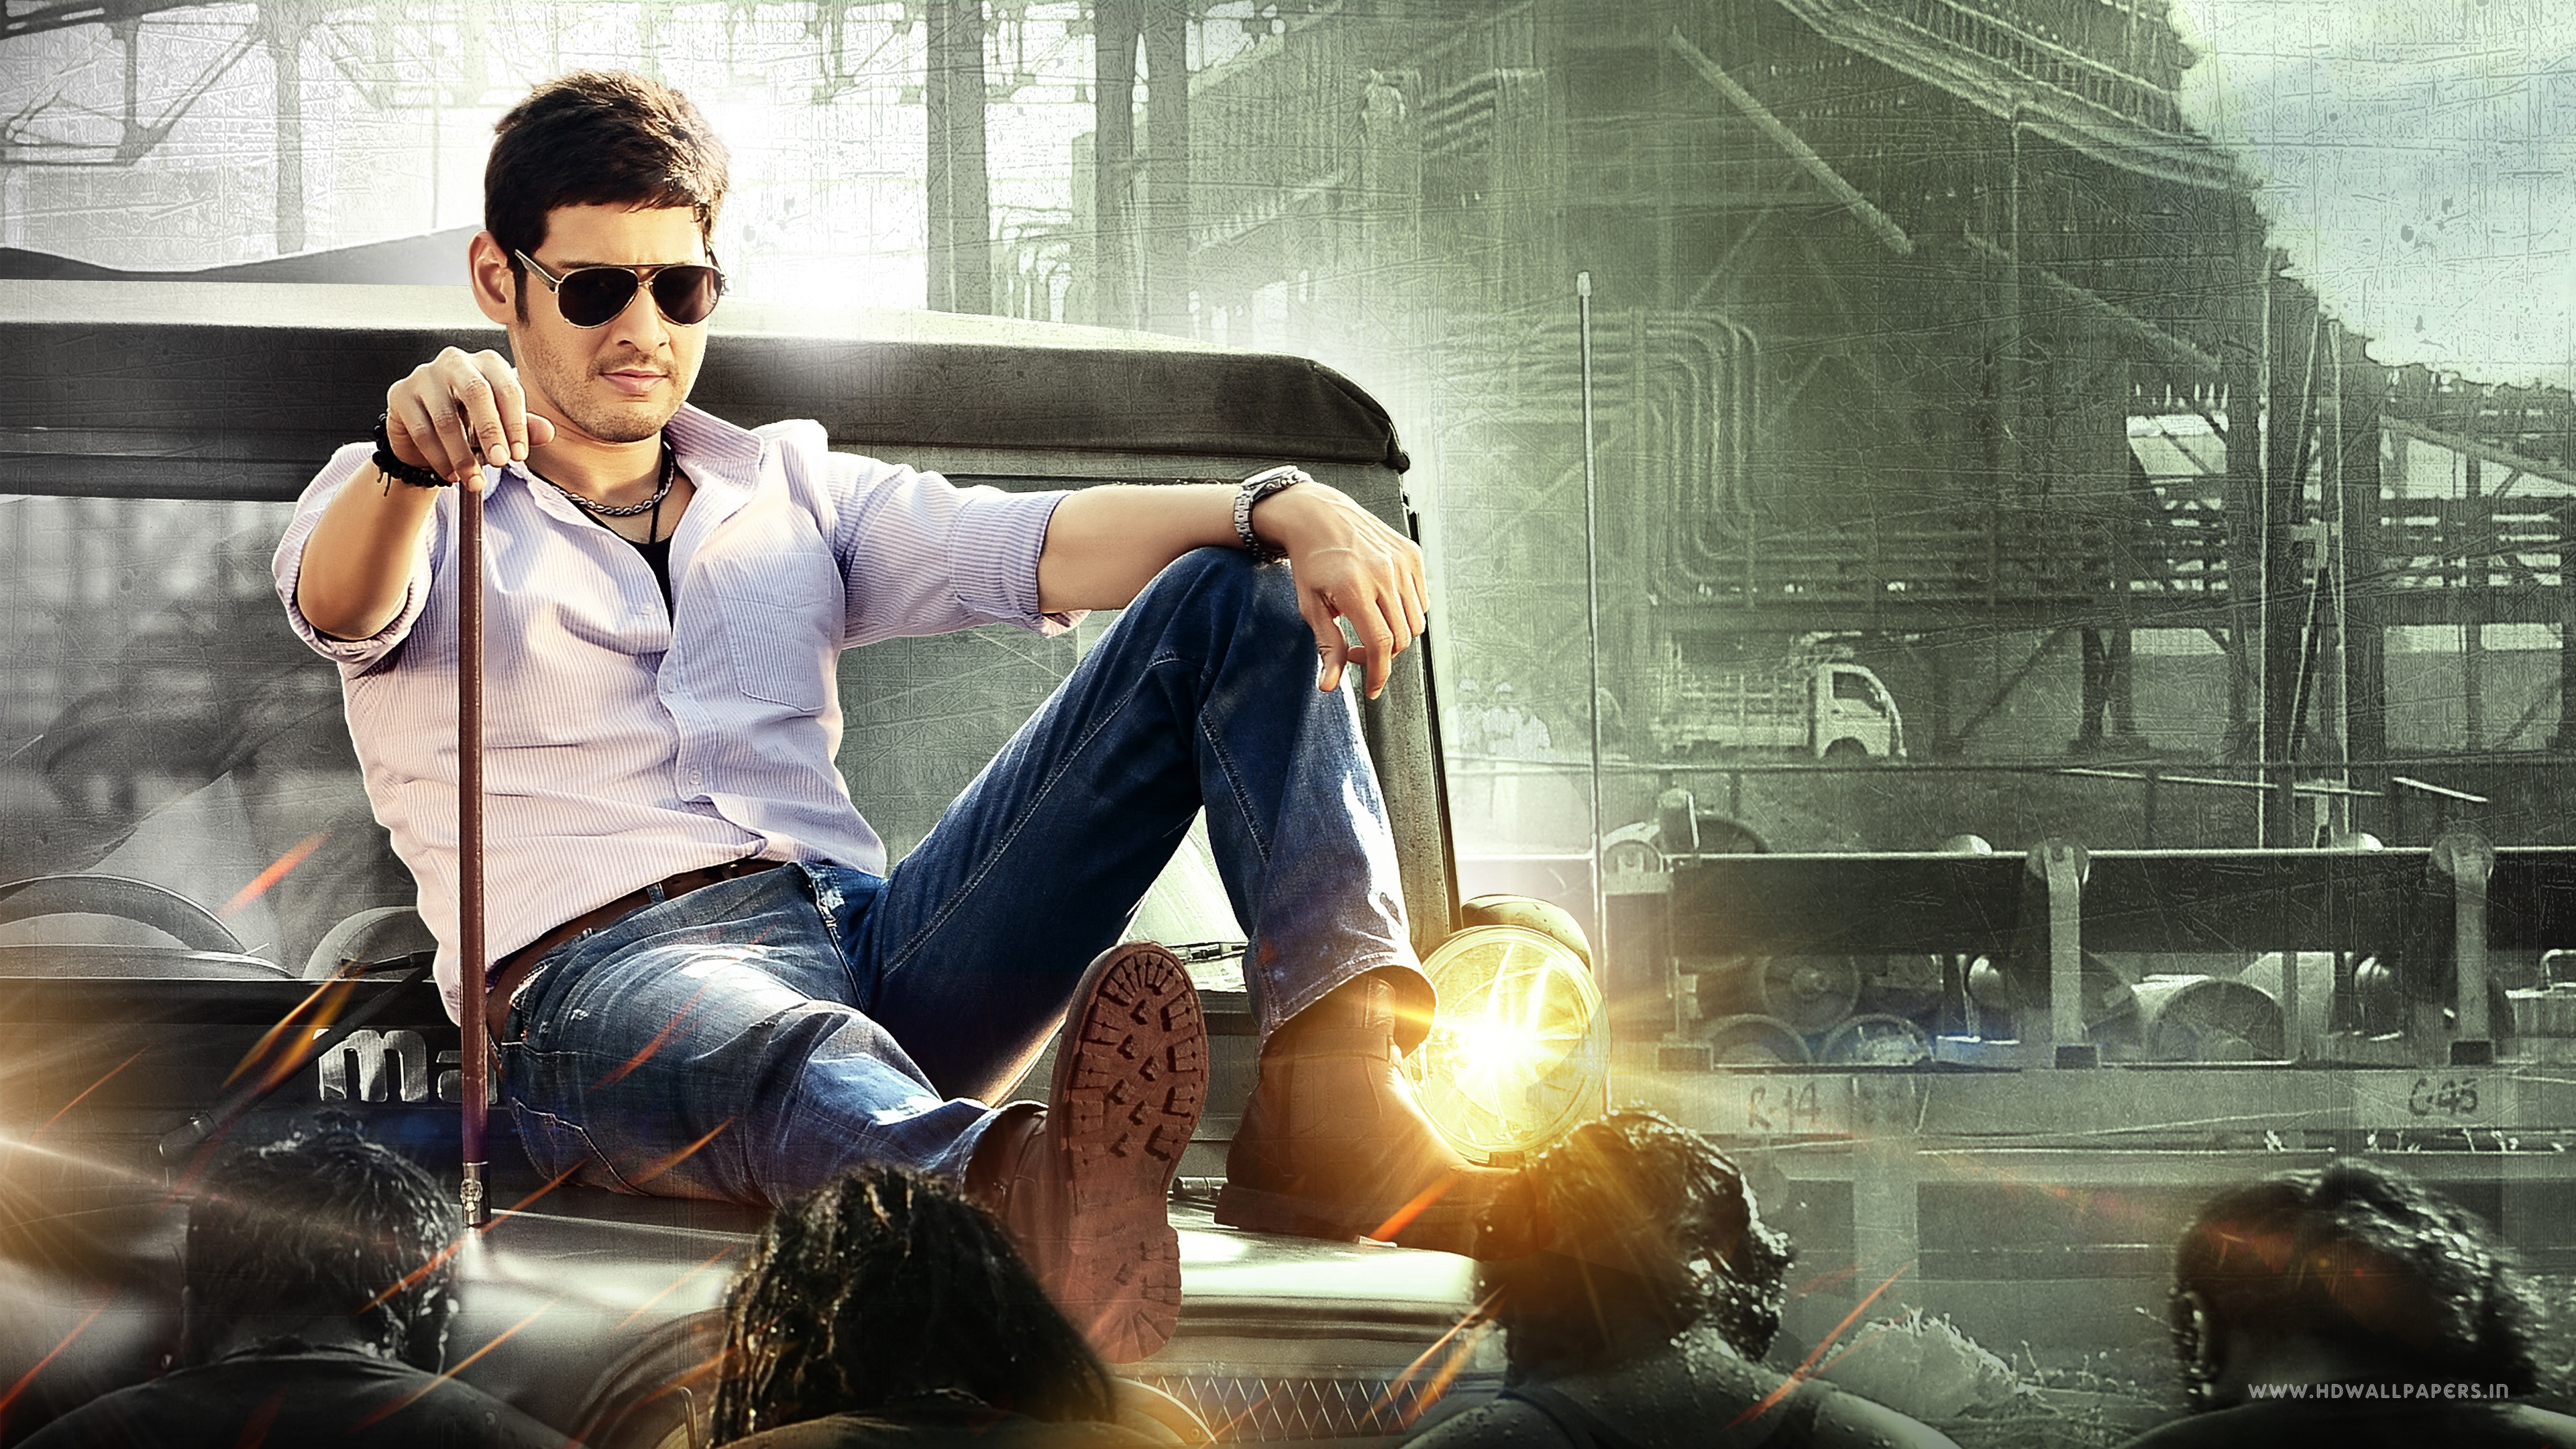 mahesh babu wallpapers in jpg format for free download